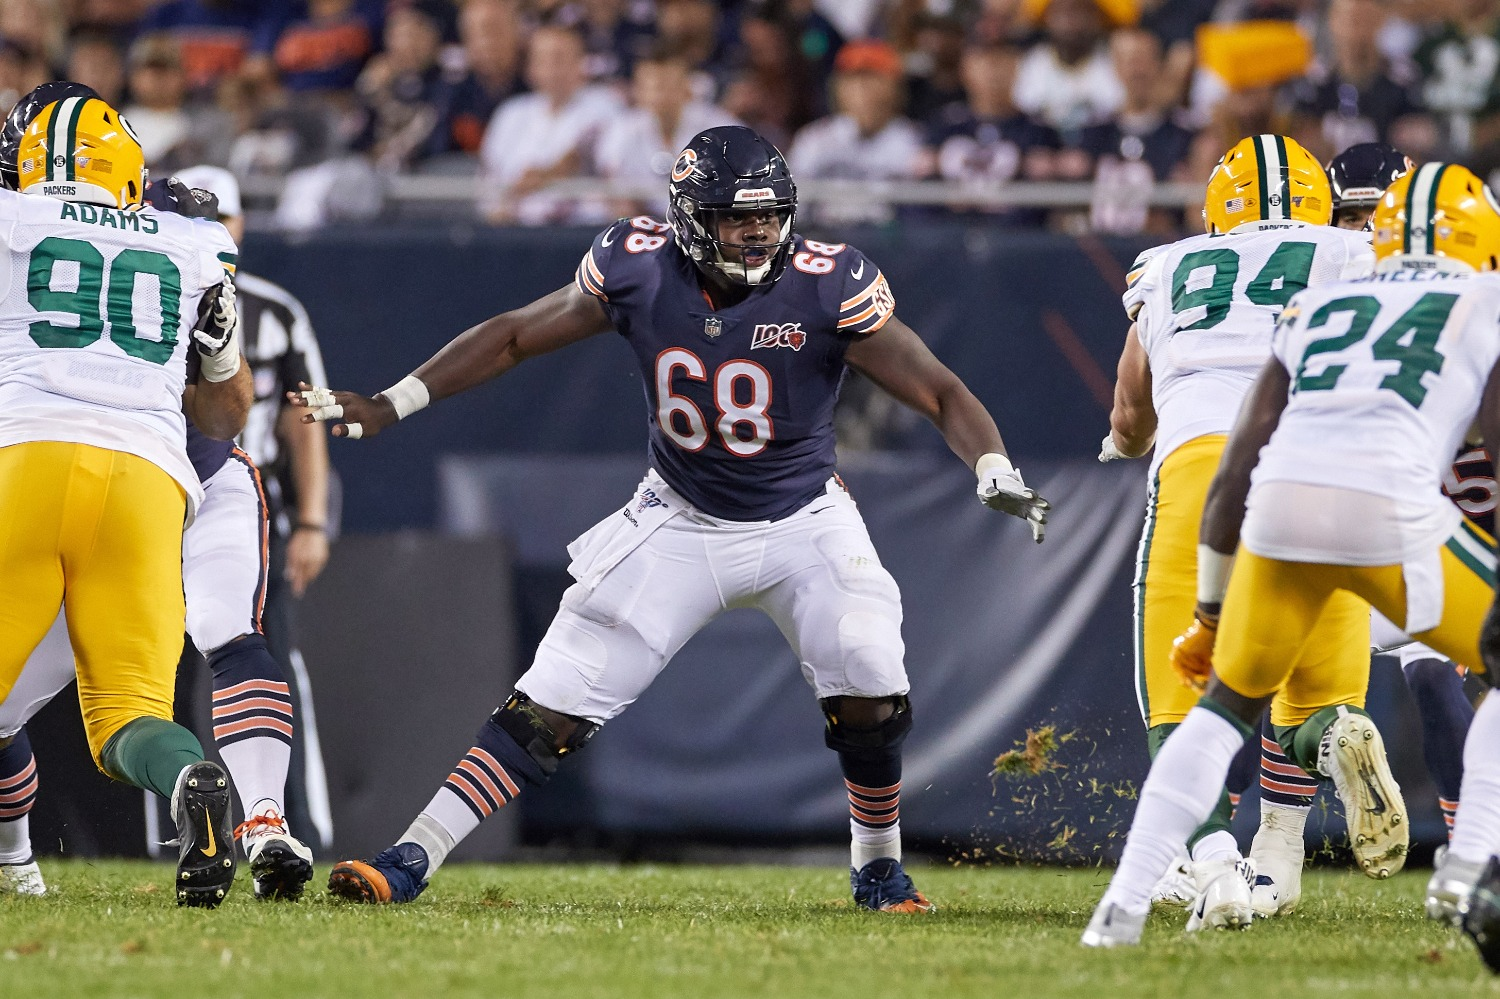 The Chicago Bears just suffered another season-ending injury blow with starting left guard James Daniels sustaining a torn pec on Thursday.